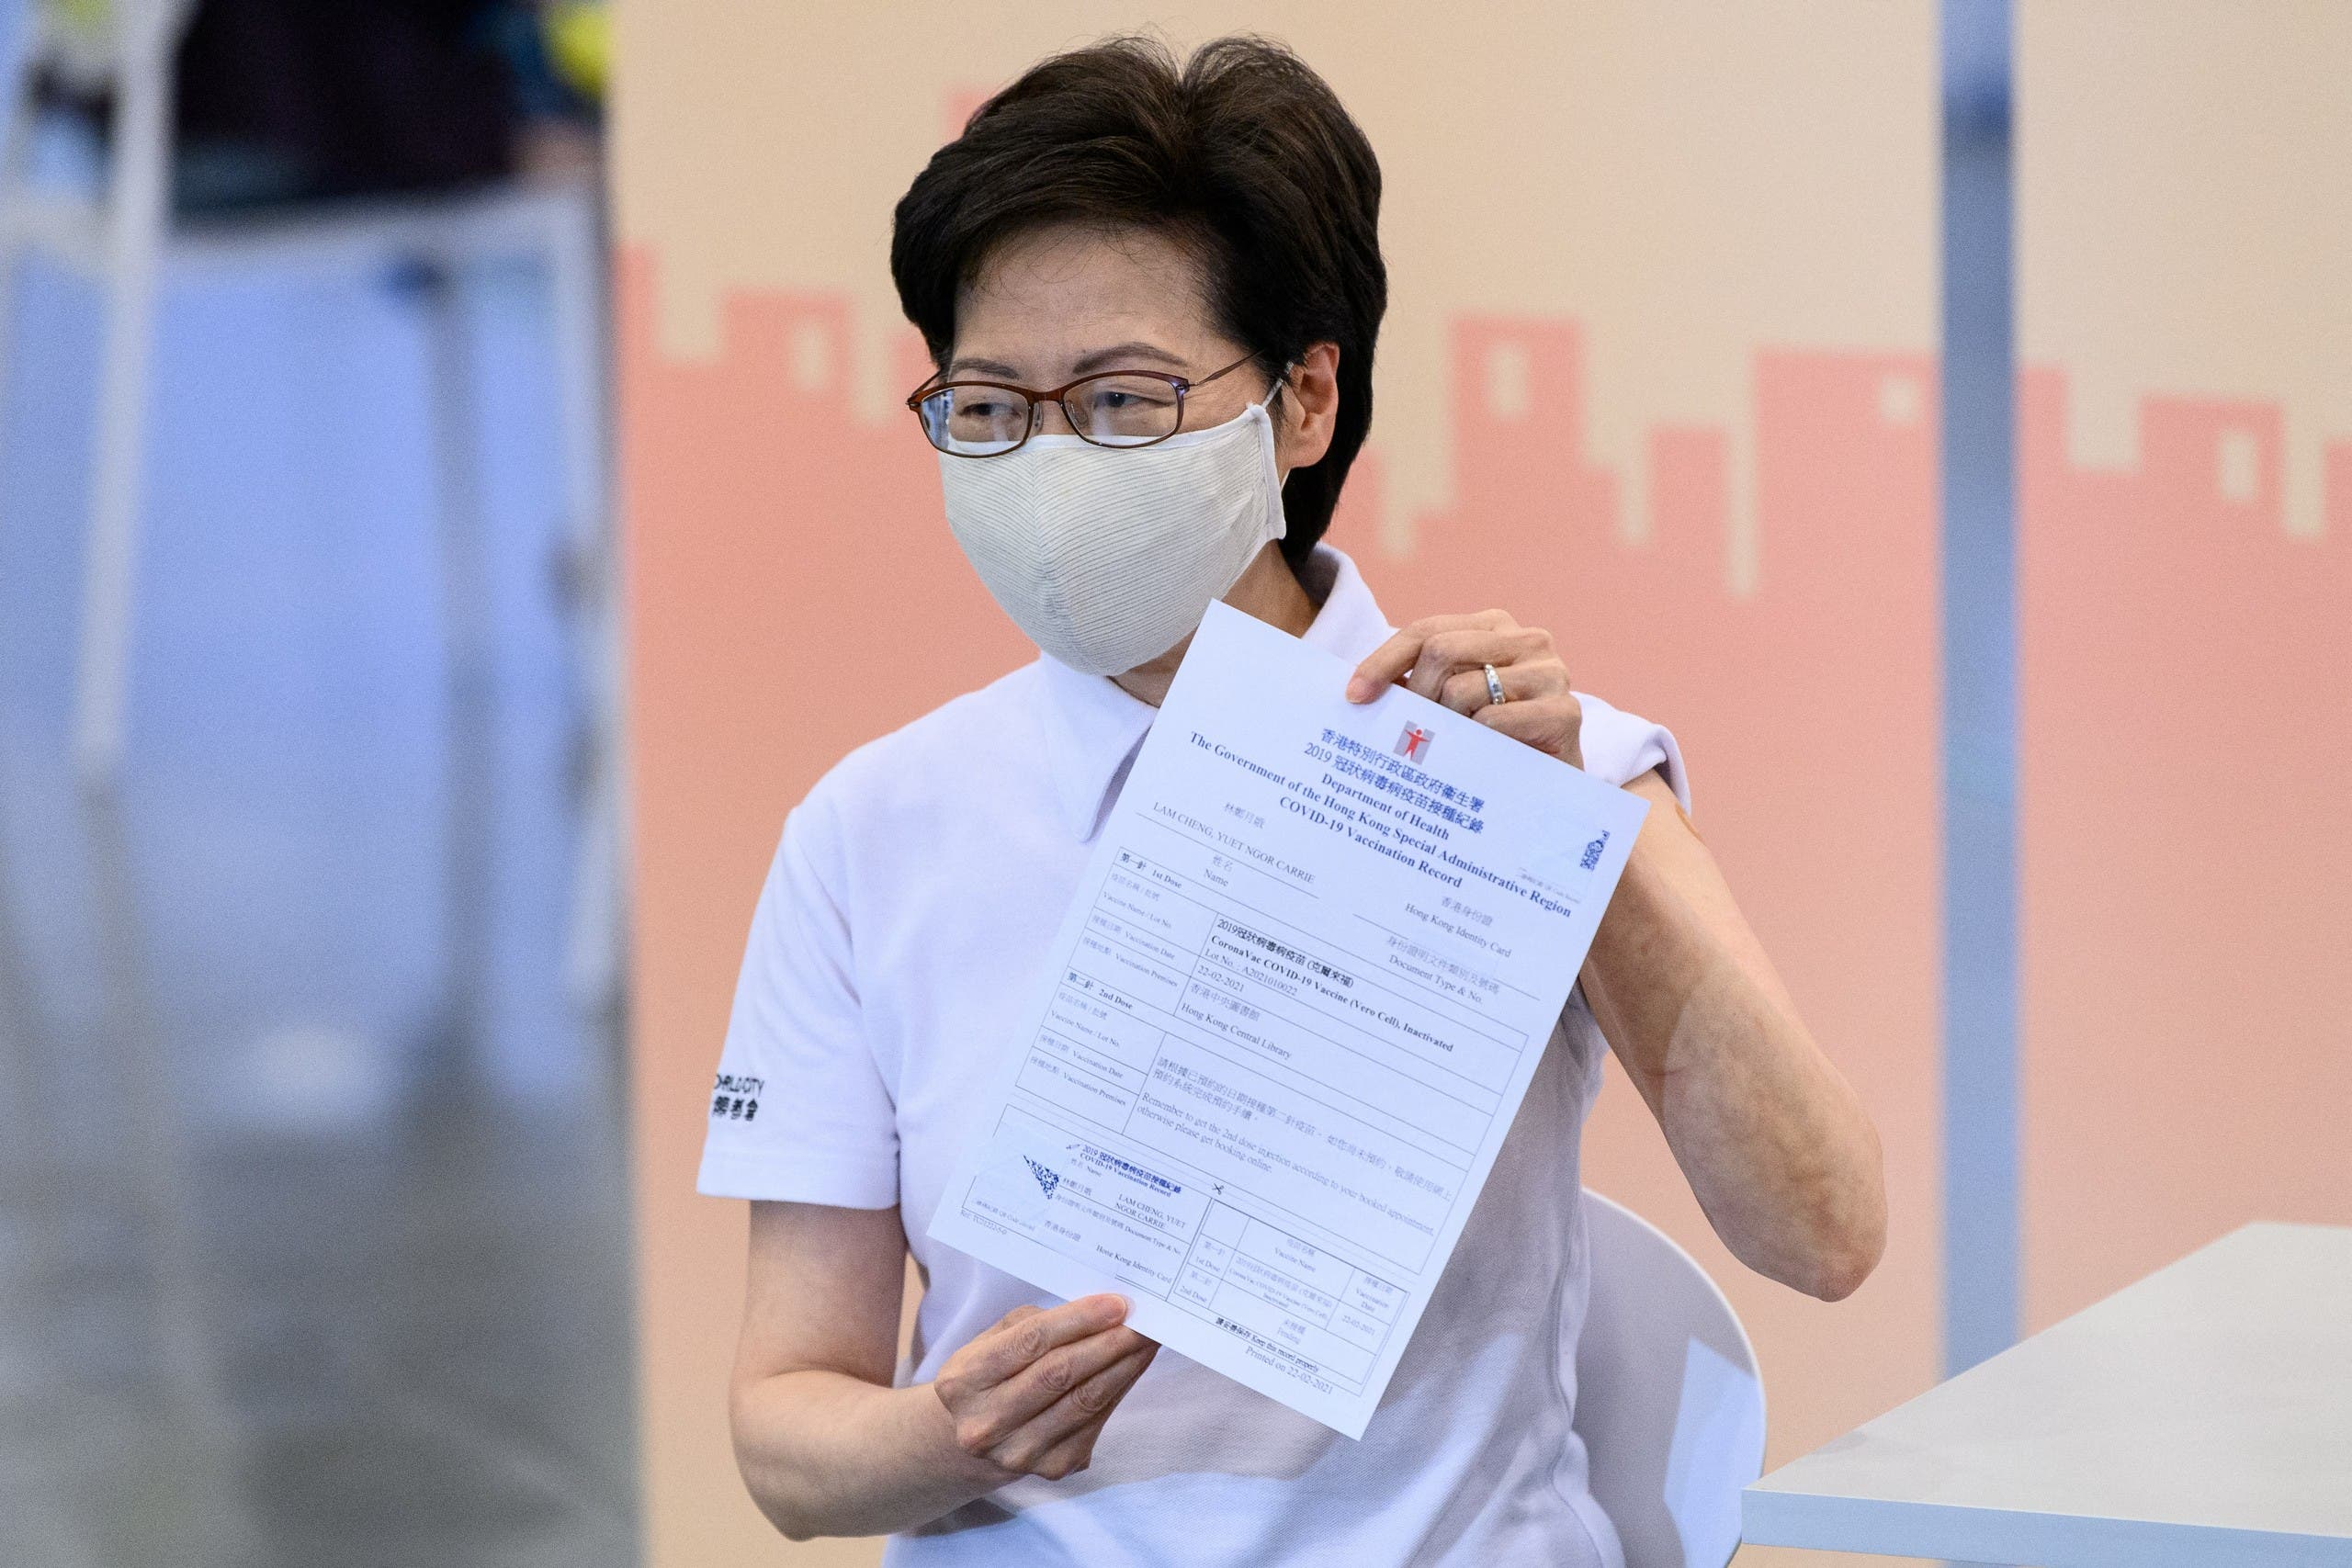 Hong Kong's Chief Executive Carrie Lam holds up a certificate after receiving China's Sinovac COVID-19 coronavirus vaccine at the Community Vaccination Center in Hong Kong on February 22, 2021. (File photo: AFP)